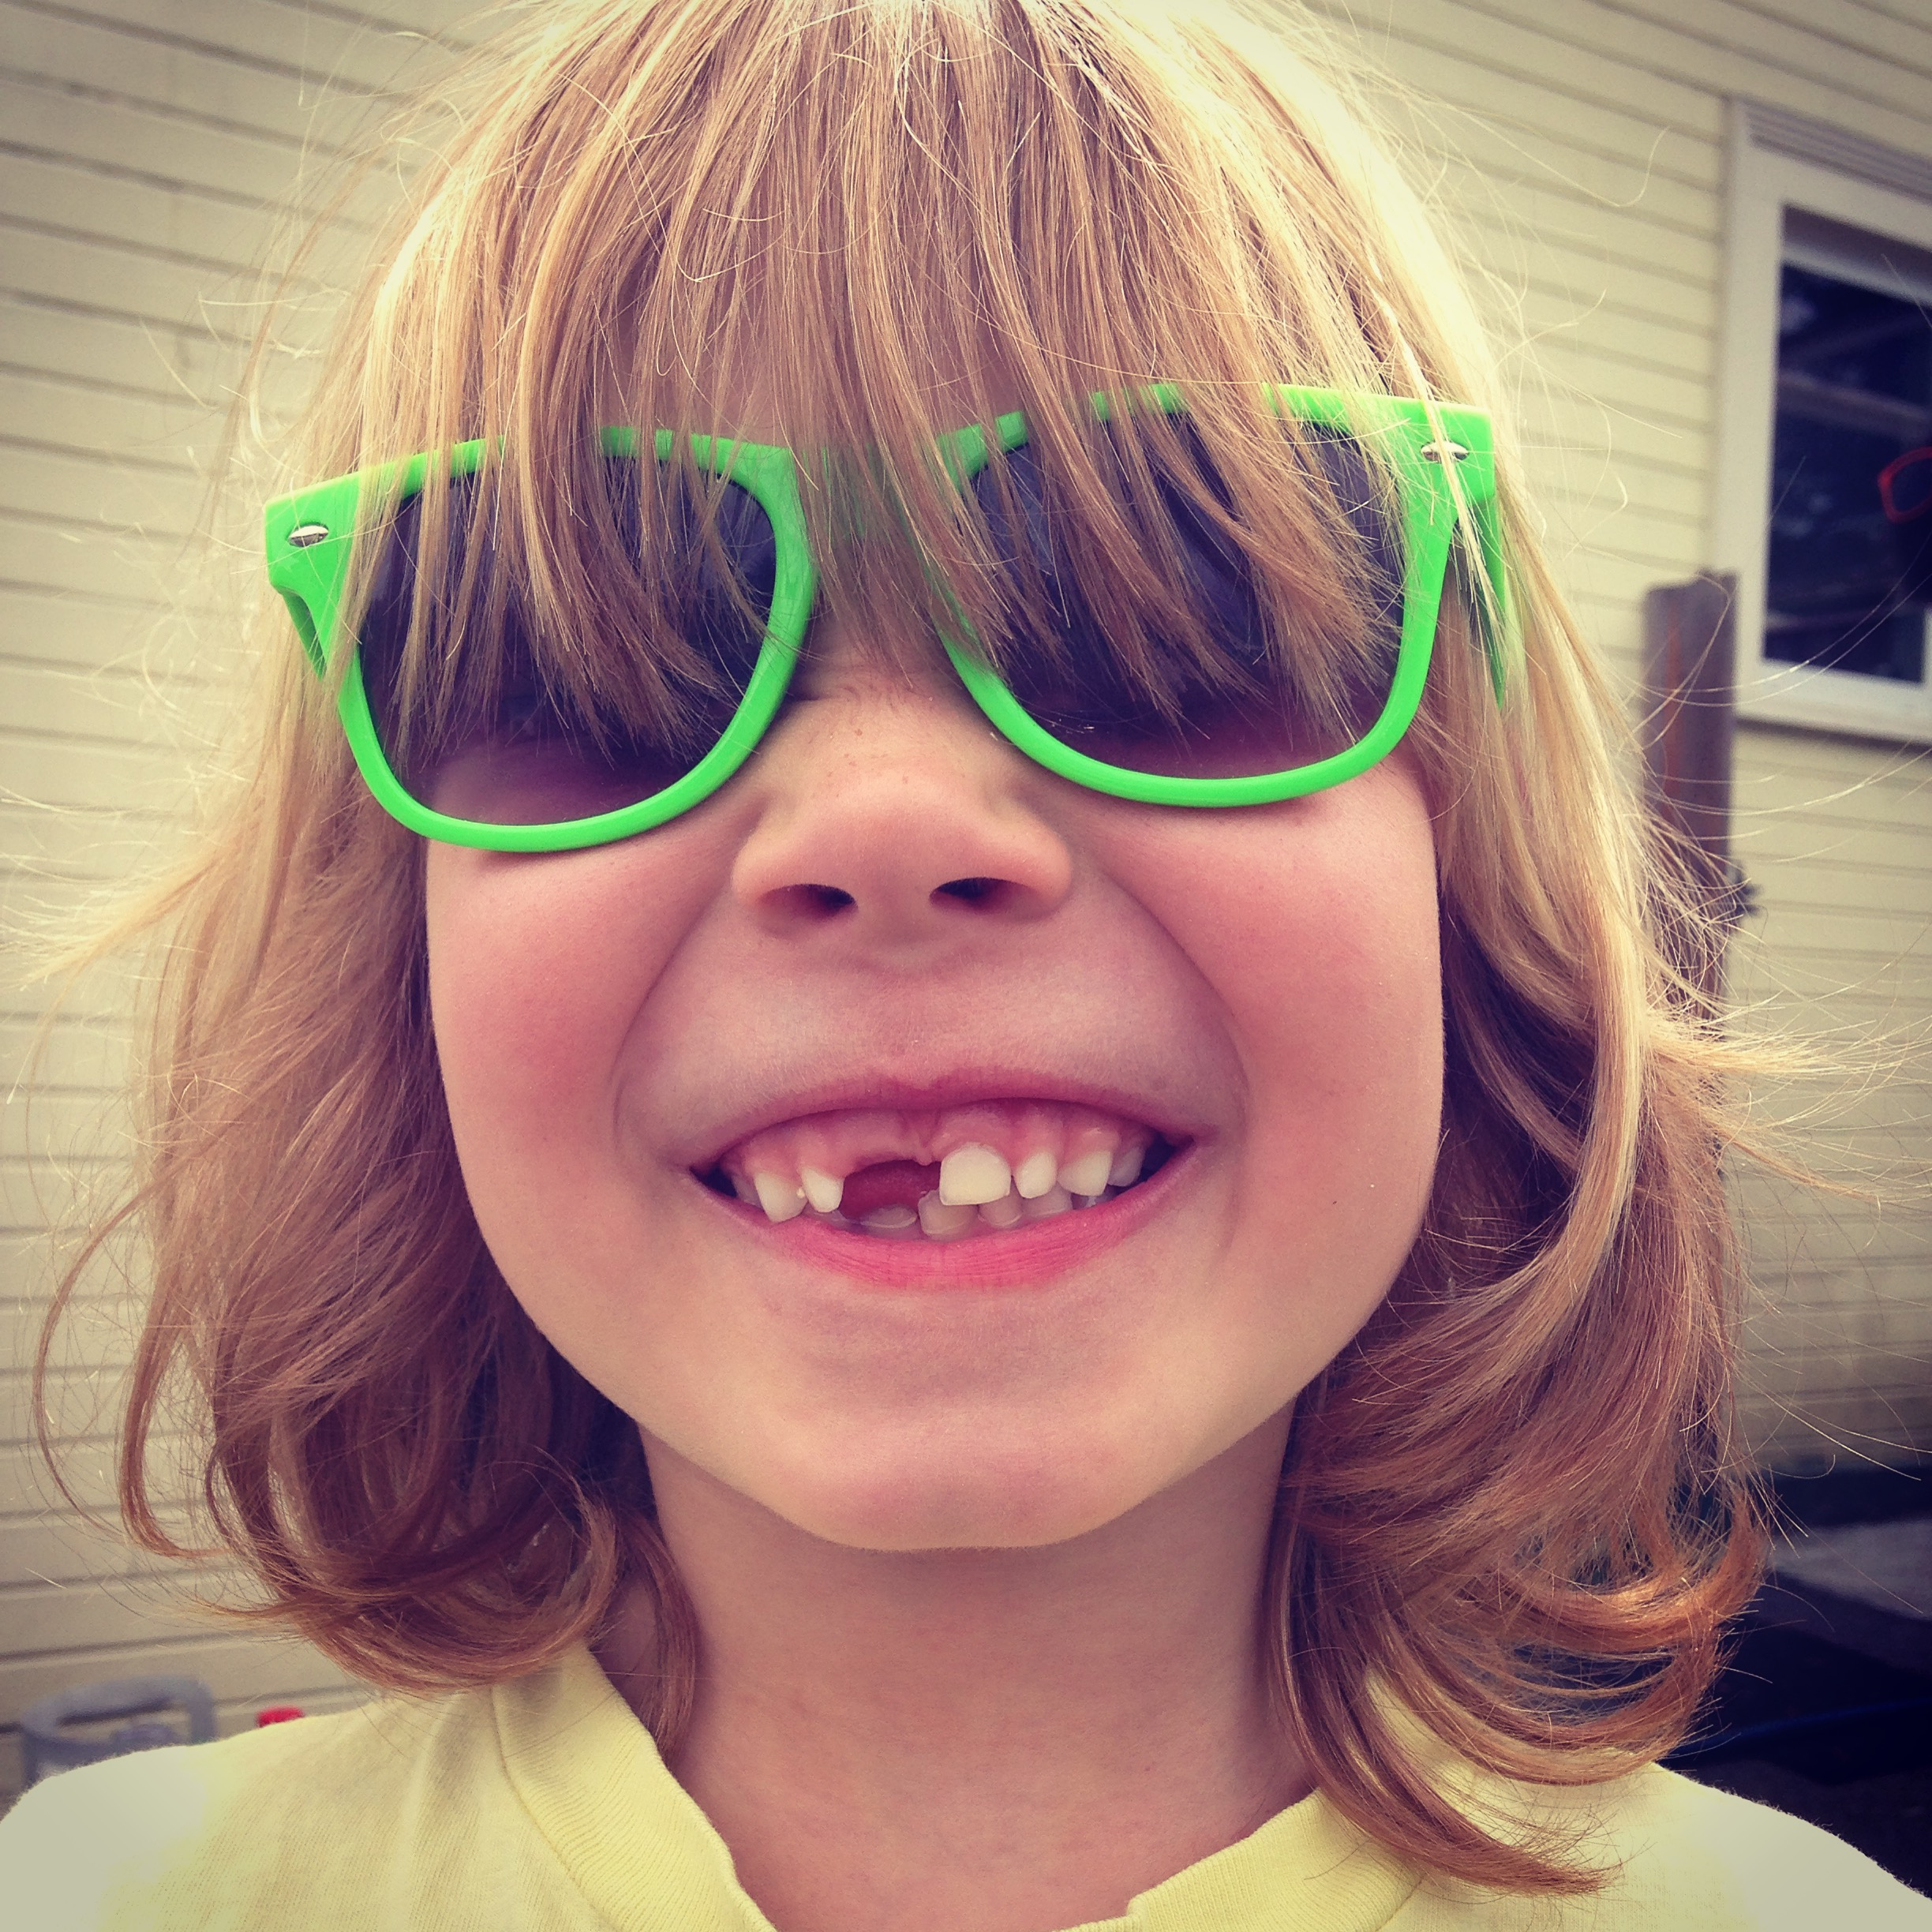 Kale has lost that other front tooth since I took this in May. Big giant gap now.